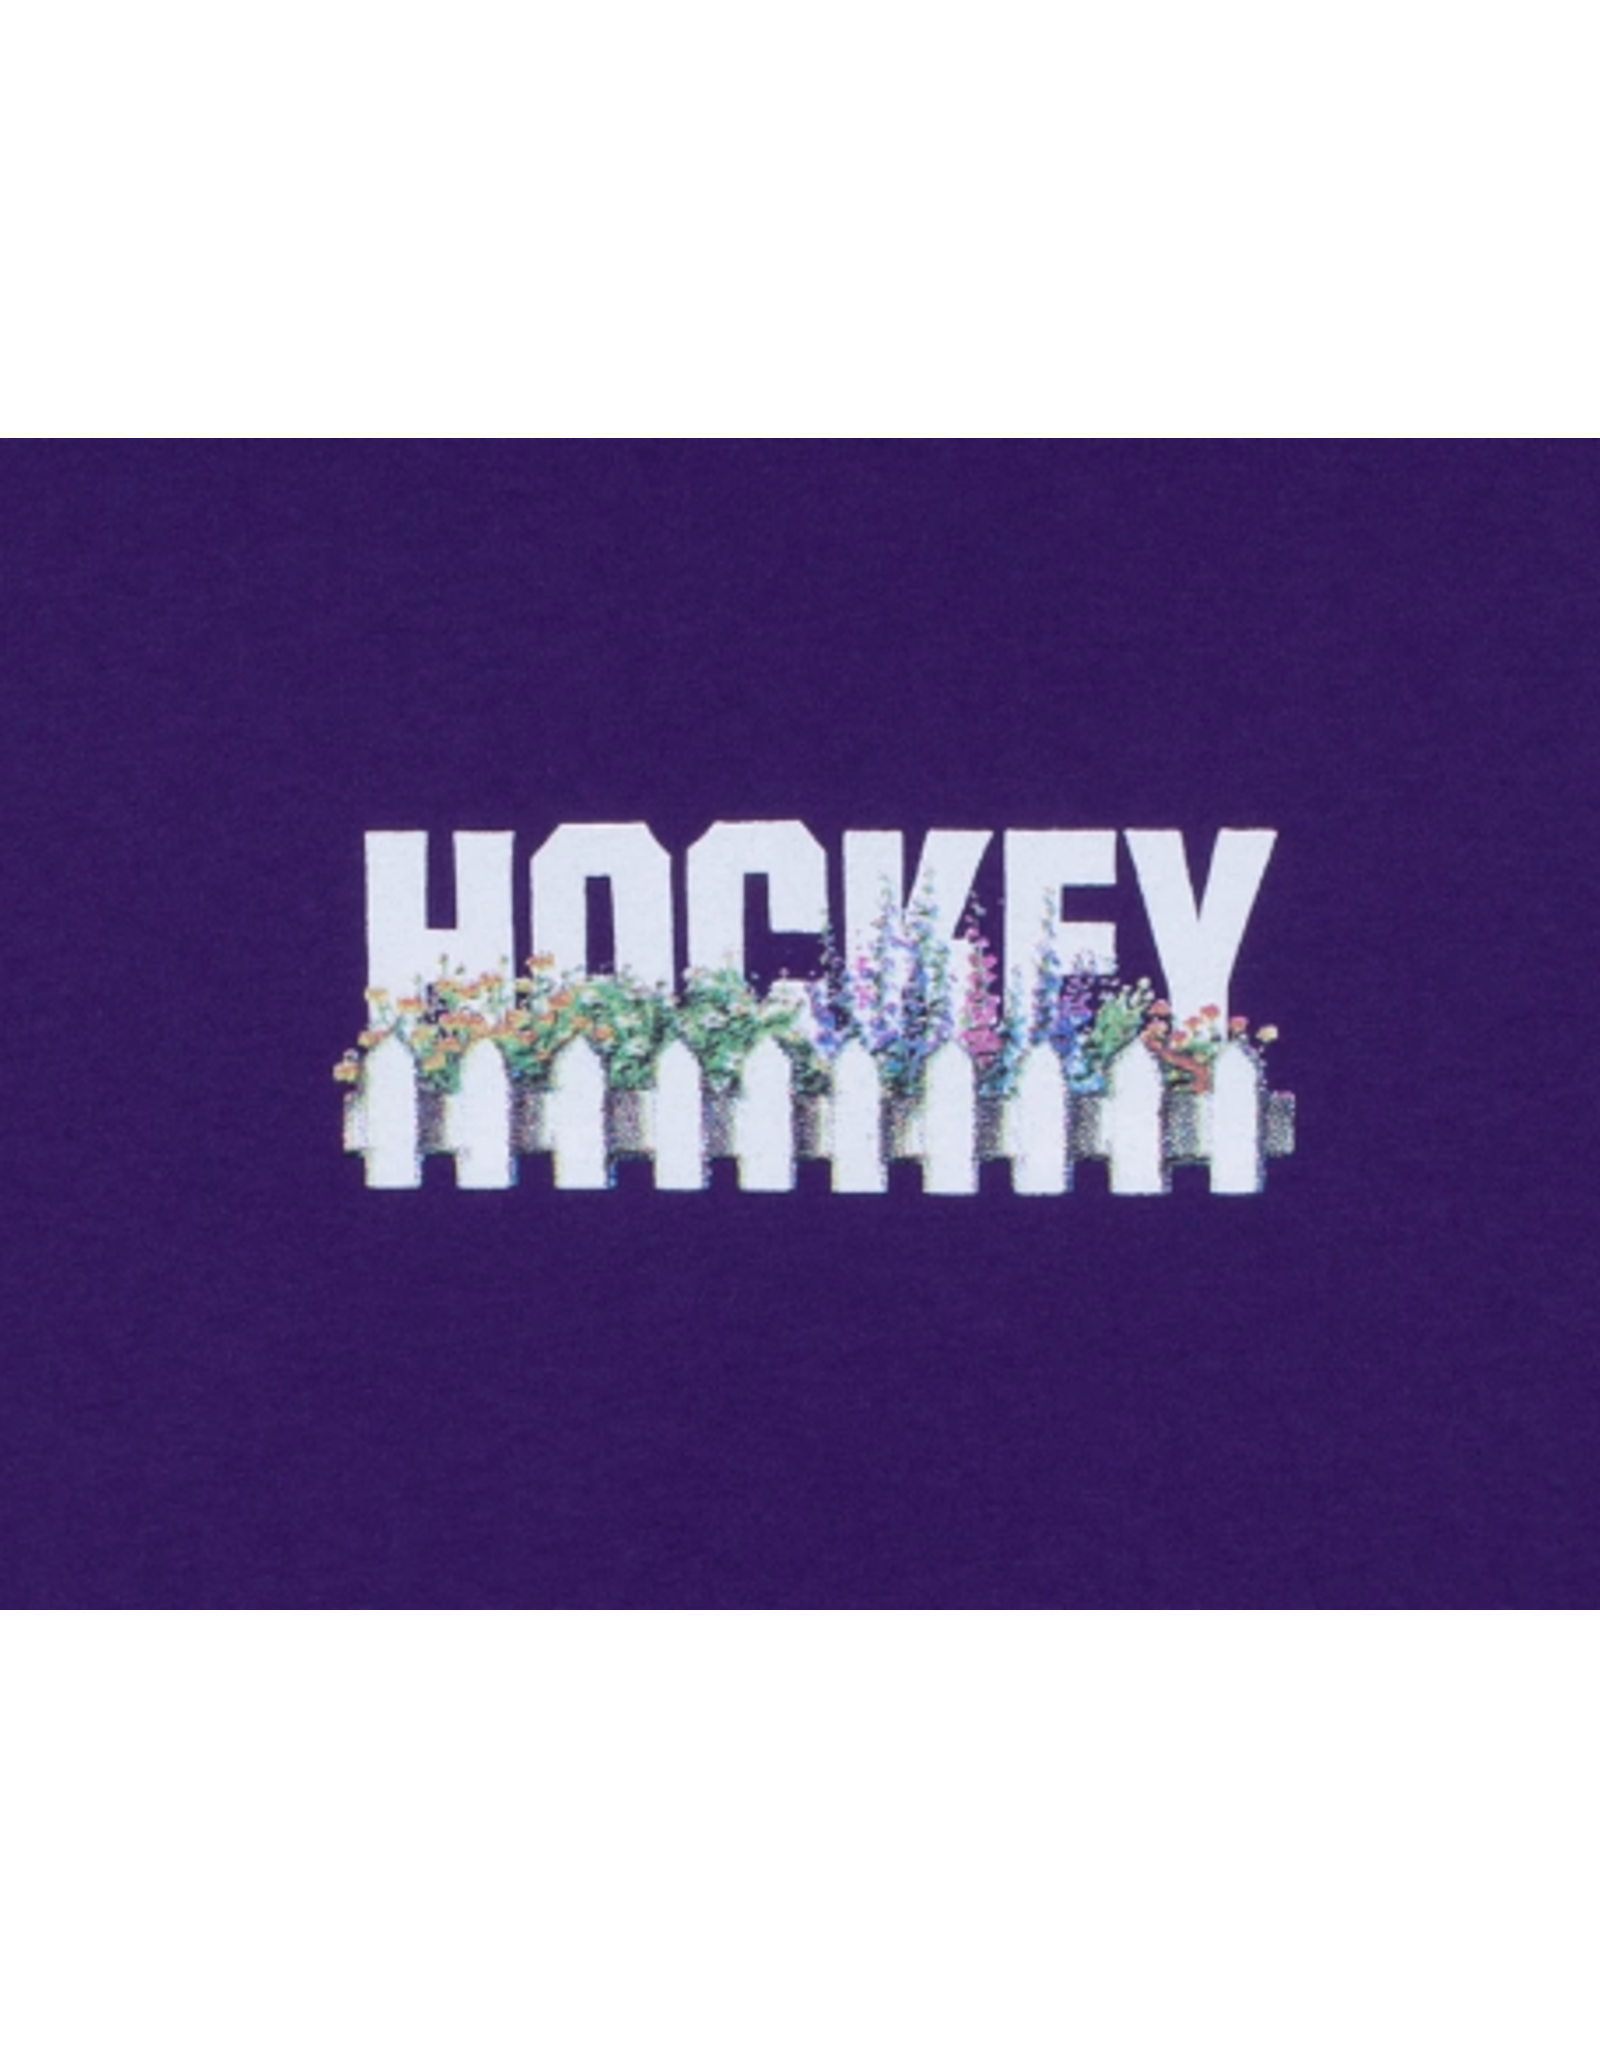 Hockey Neighbor T-Shirt - Purple